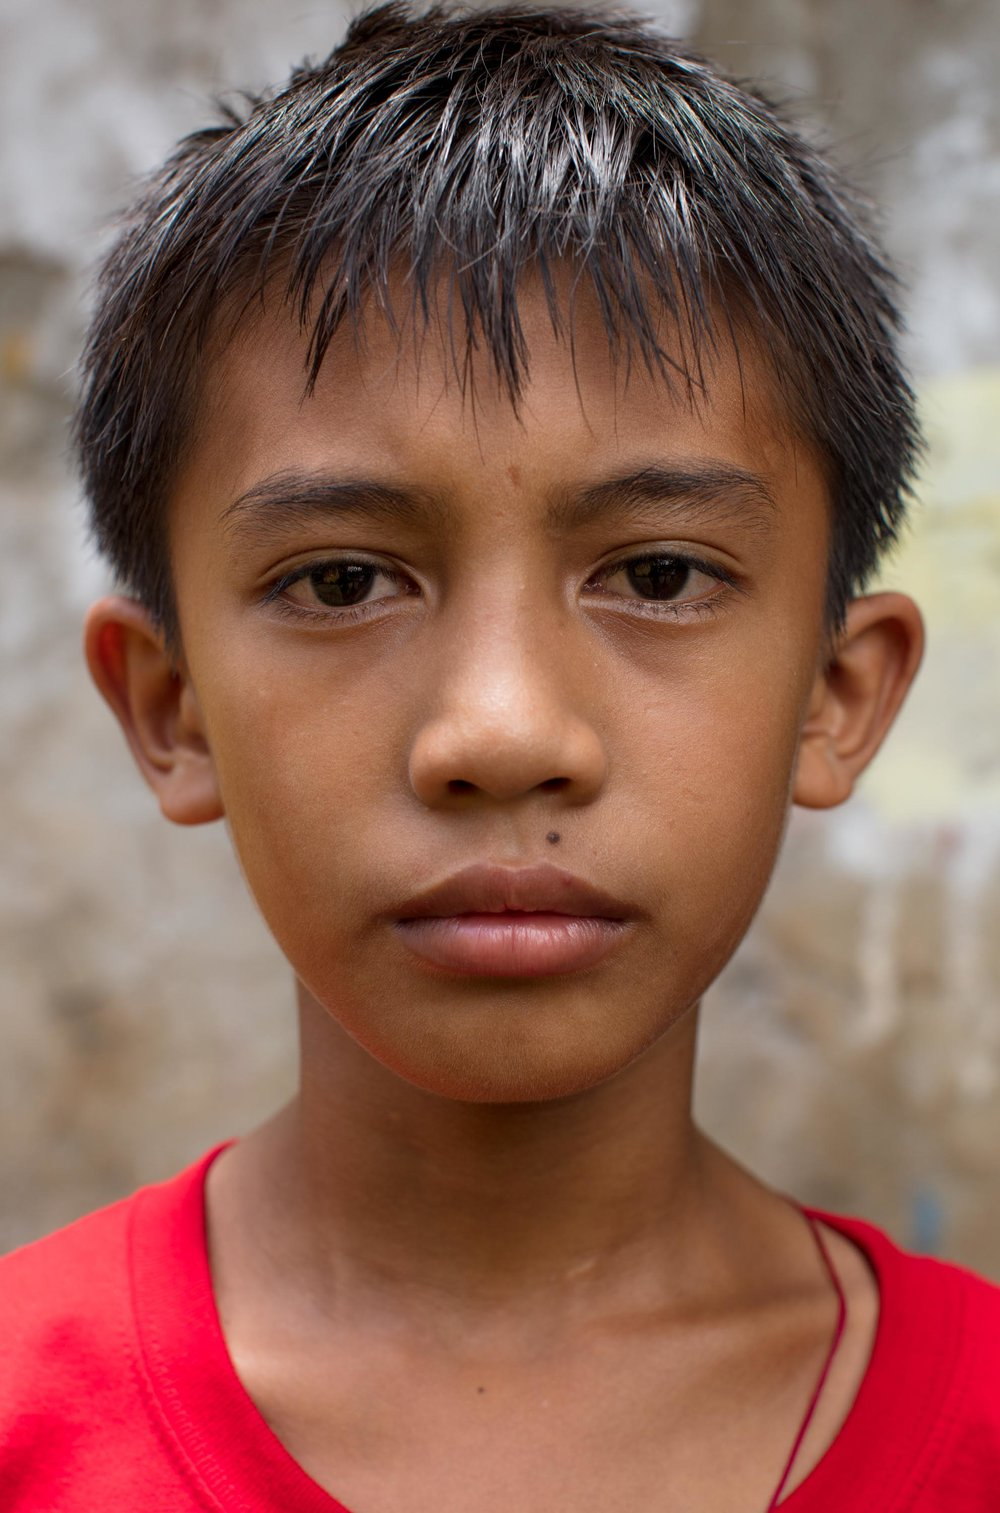 My name is Christian and I'm 11 years old. I live in a small shack with my family. My Father is a fisherman and my Mother stays home because she has a mental illness. Sometimes we don't eat, especially if its not good weather and my Father can't catch fish. My Father took over all responsibilities in the family because my Mother cannot help him. We are all very sad about her and it makes me cry when I see my Mother talking to herself. I'm so scared that I will be sad and stressed and I will not be able to keep pursuing my studies. I feel so lonely. I want to see my family happy because that will make me happy and I hope that my Mother gets better.